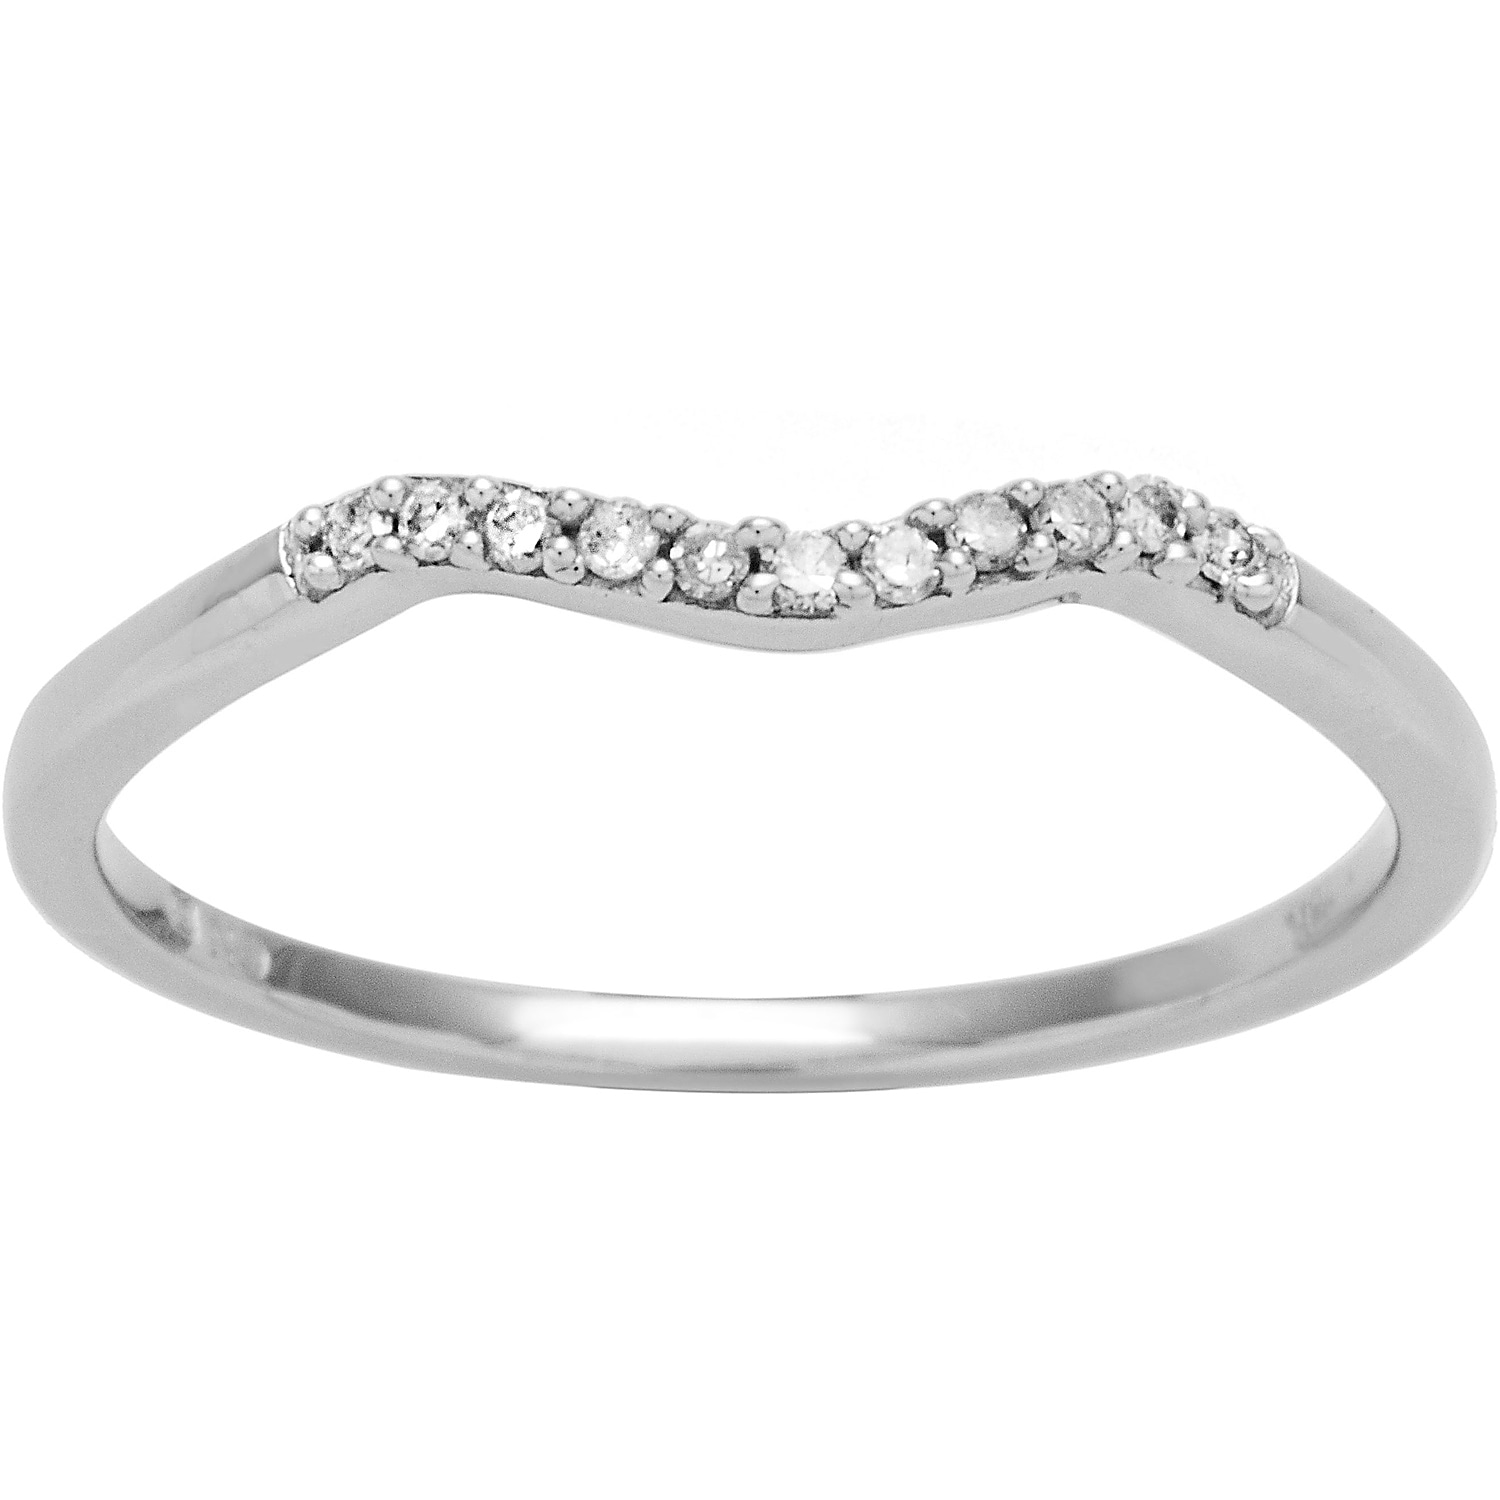 Miadora 10k White Gold Diamond Accent Curved Wedding Band: White Gold Diamond Curved Wedding Bands At Reisefeber.org